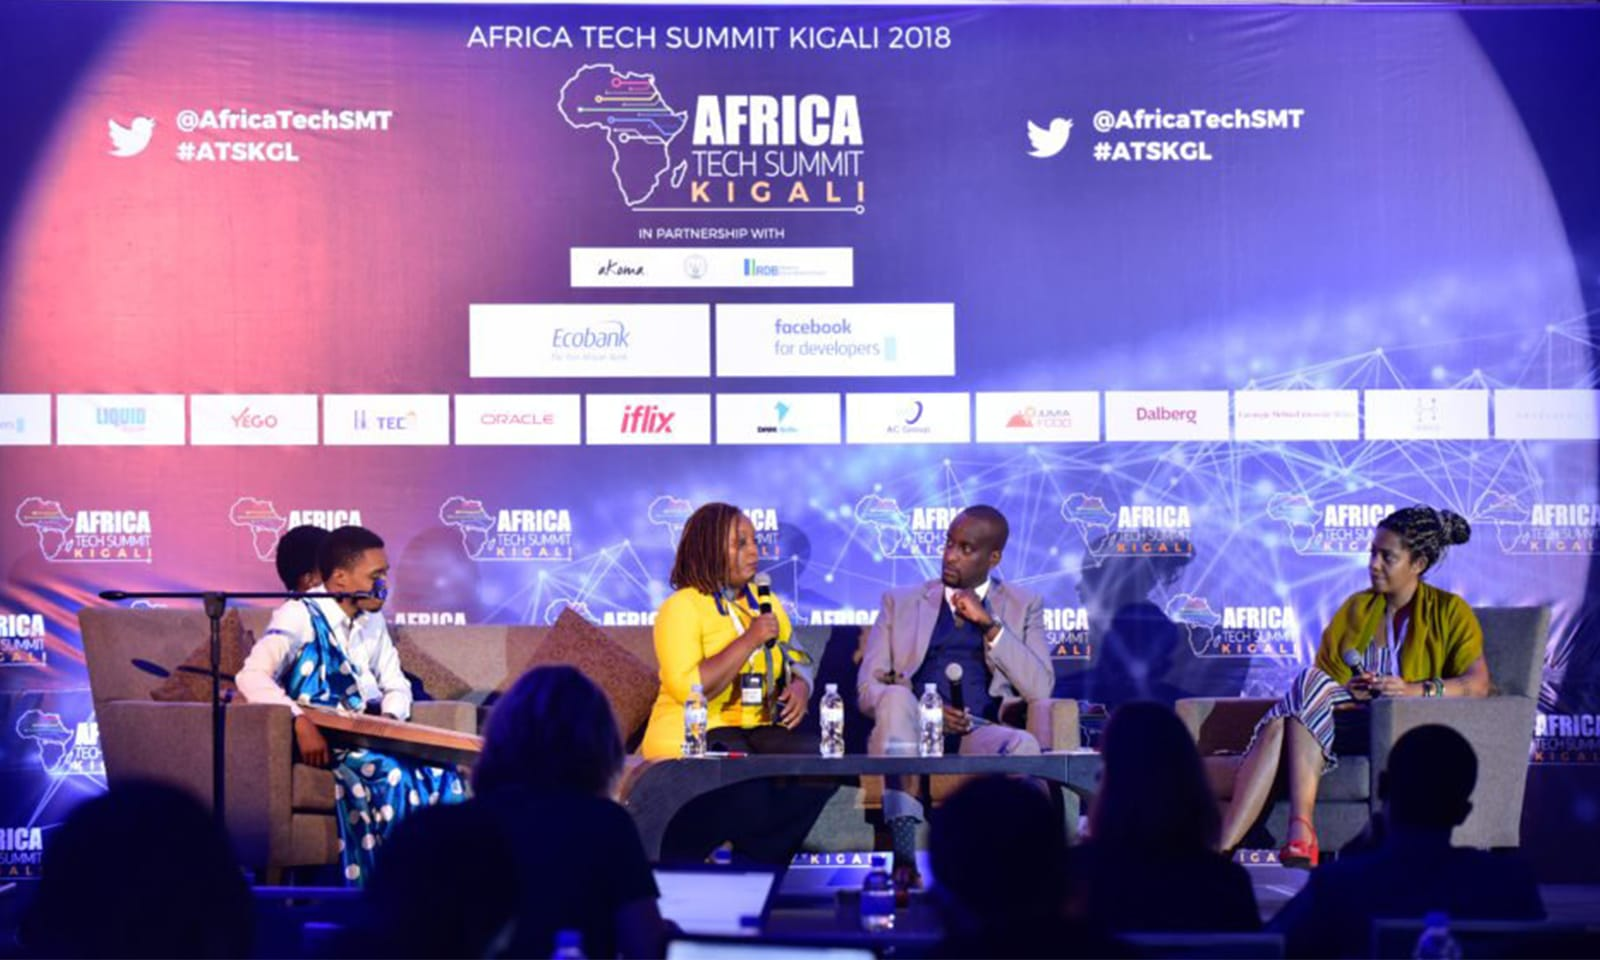 Africa-Tech-Summit